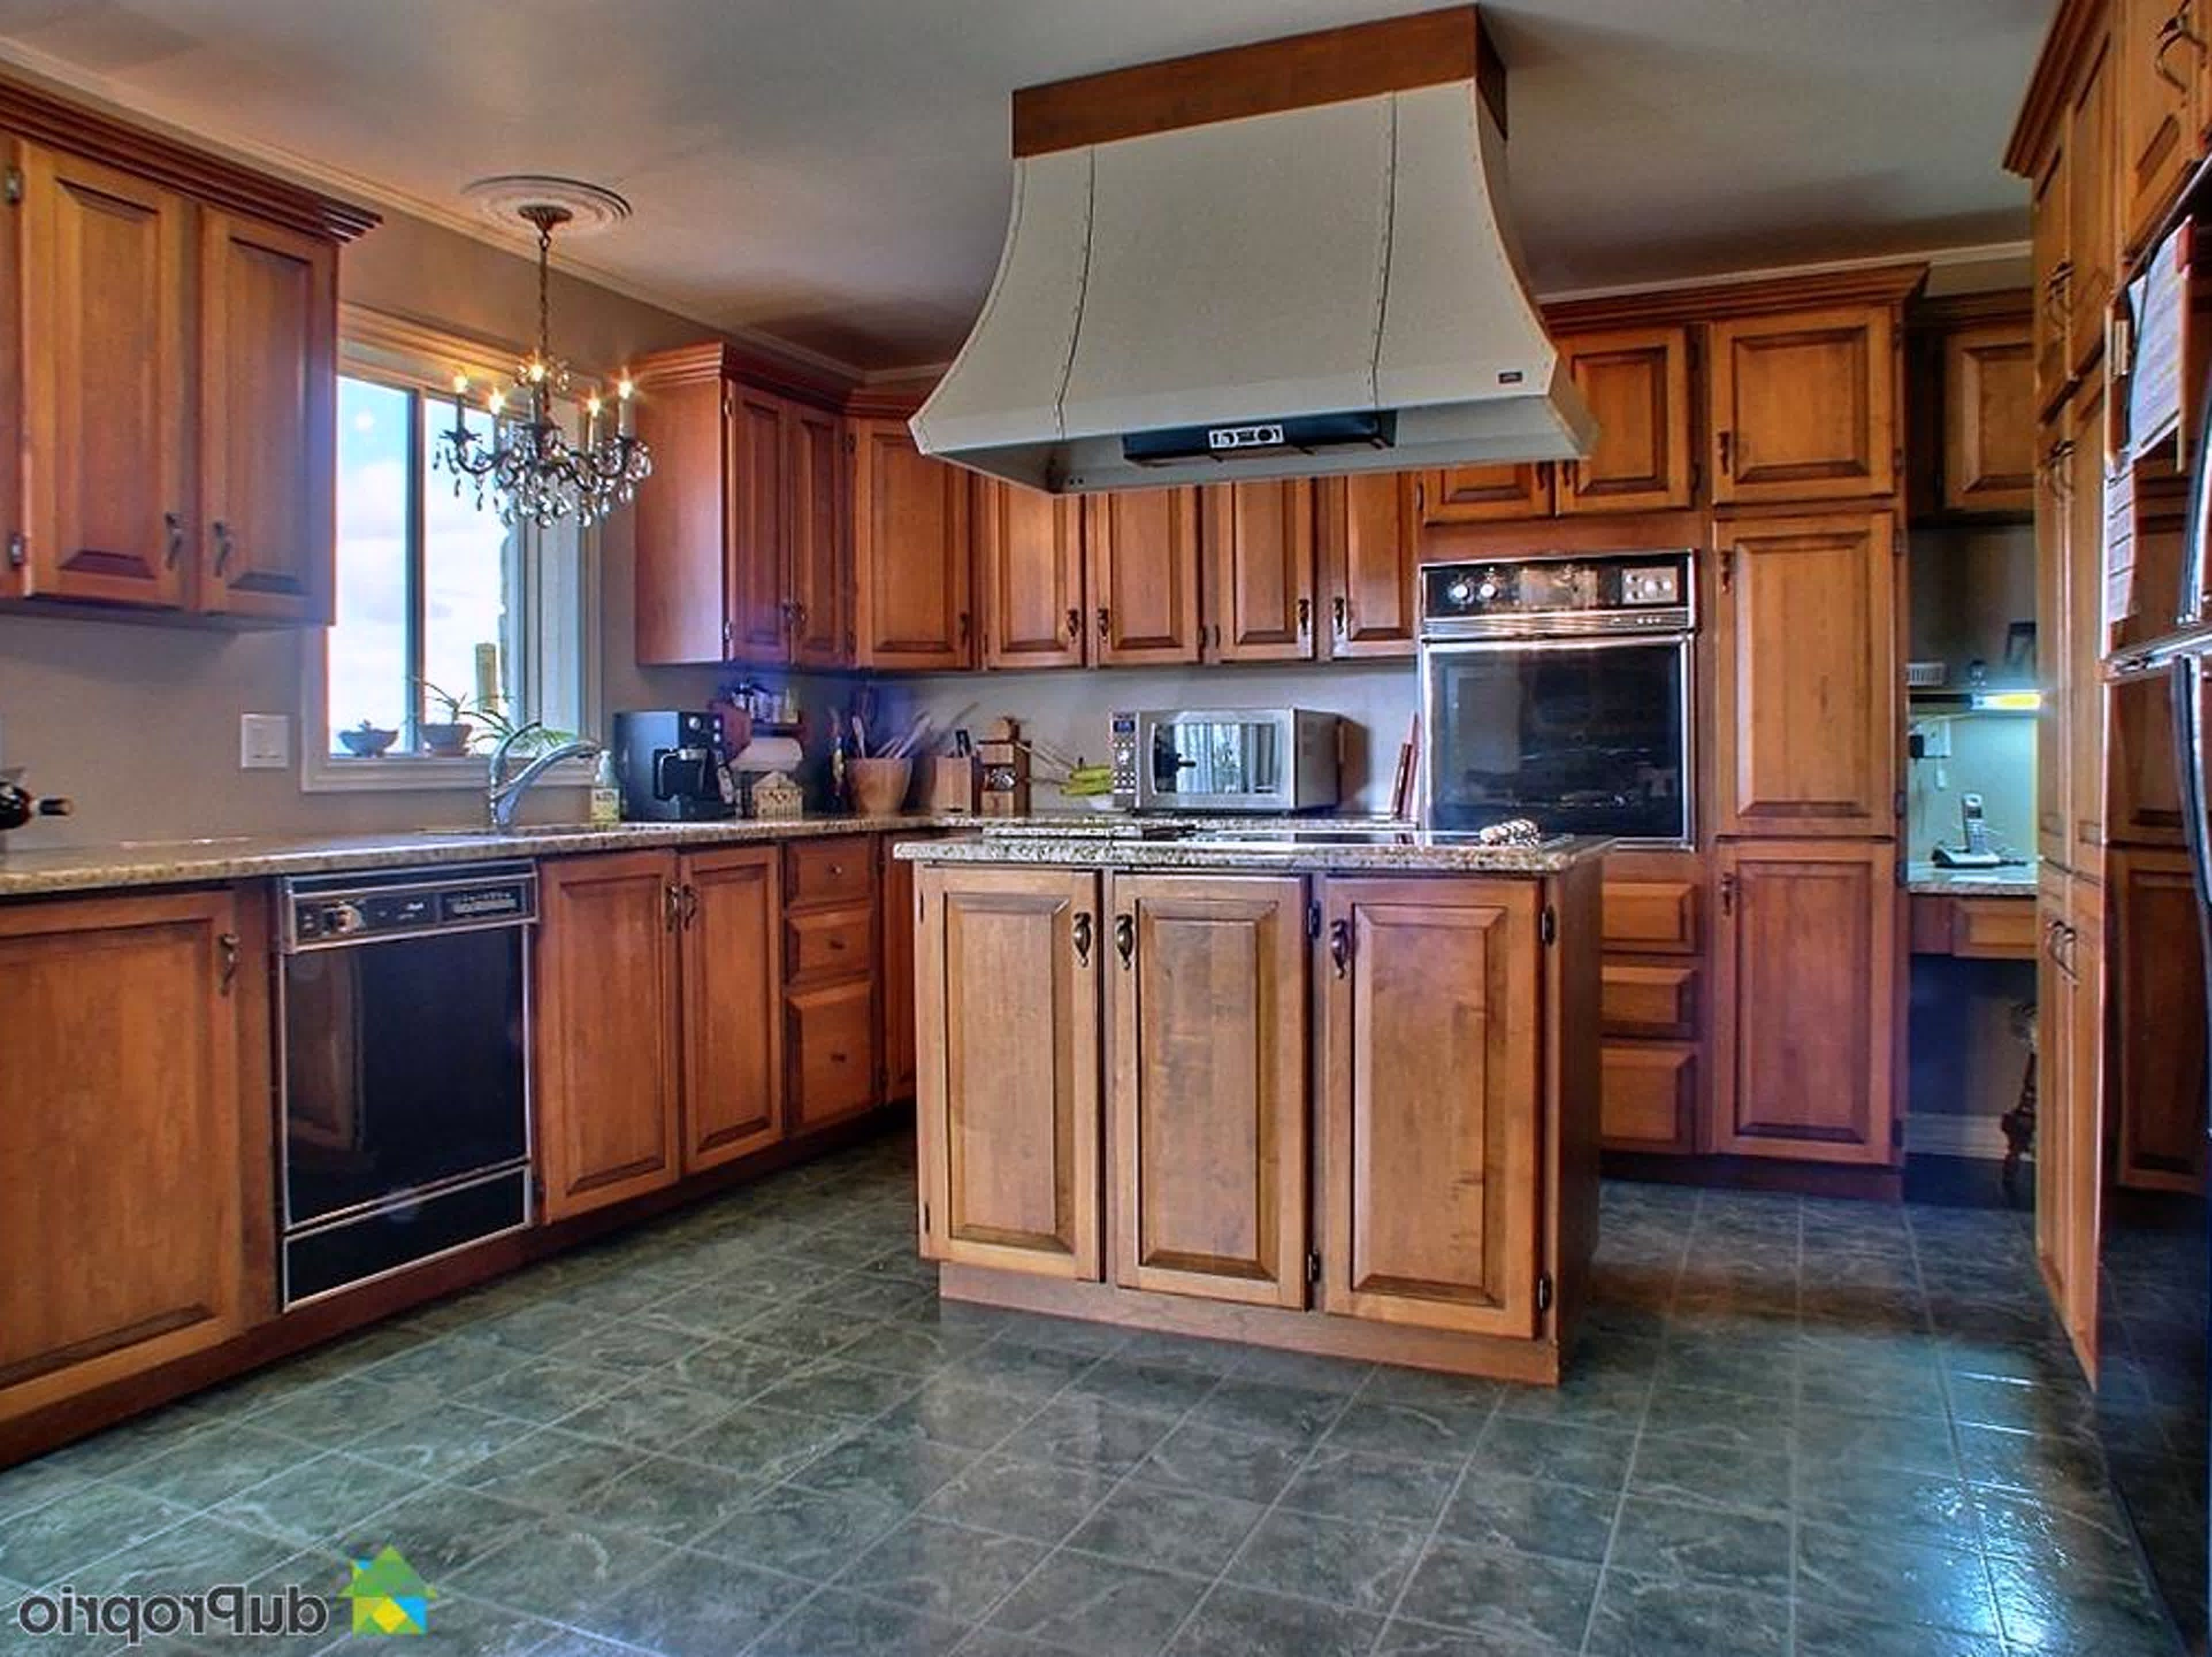 kitchen elegant used kitchen cabinets in used kitchen from